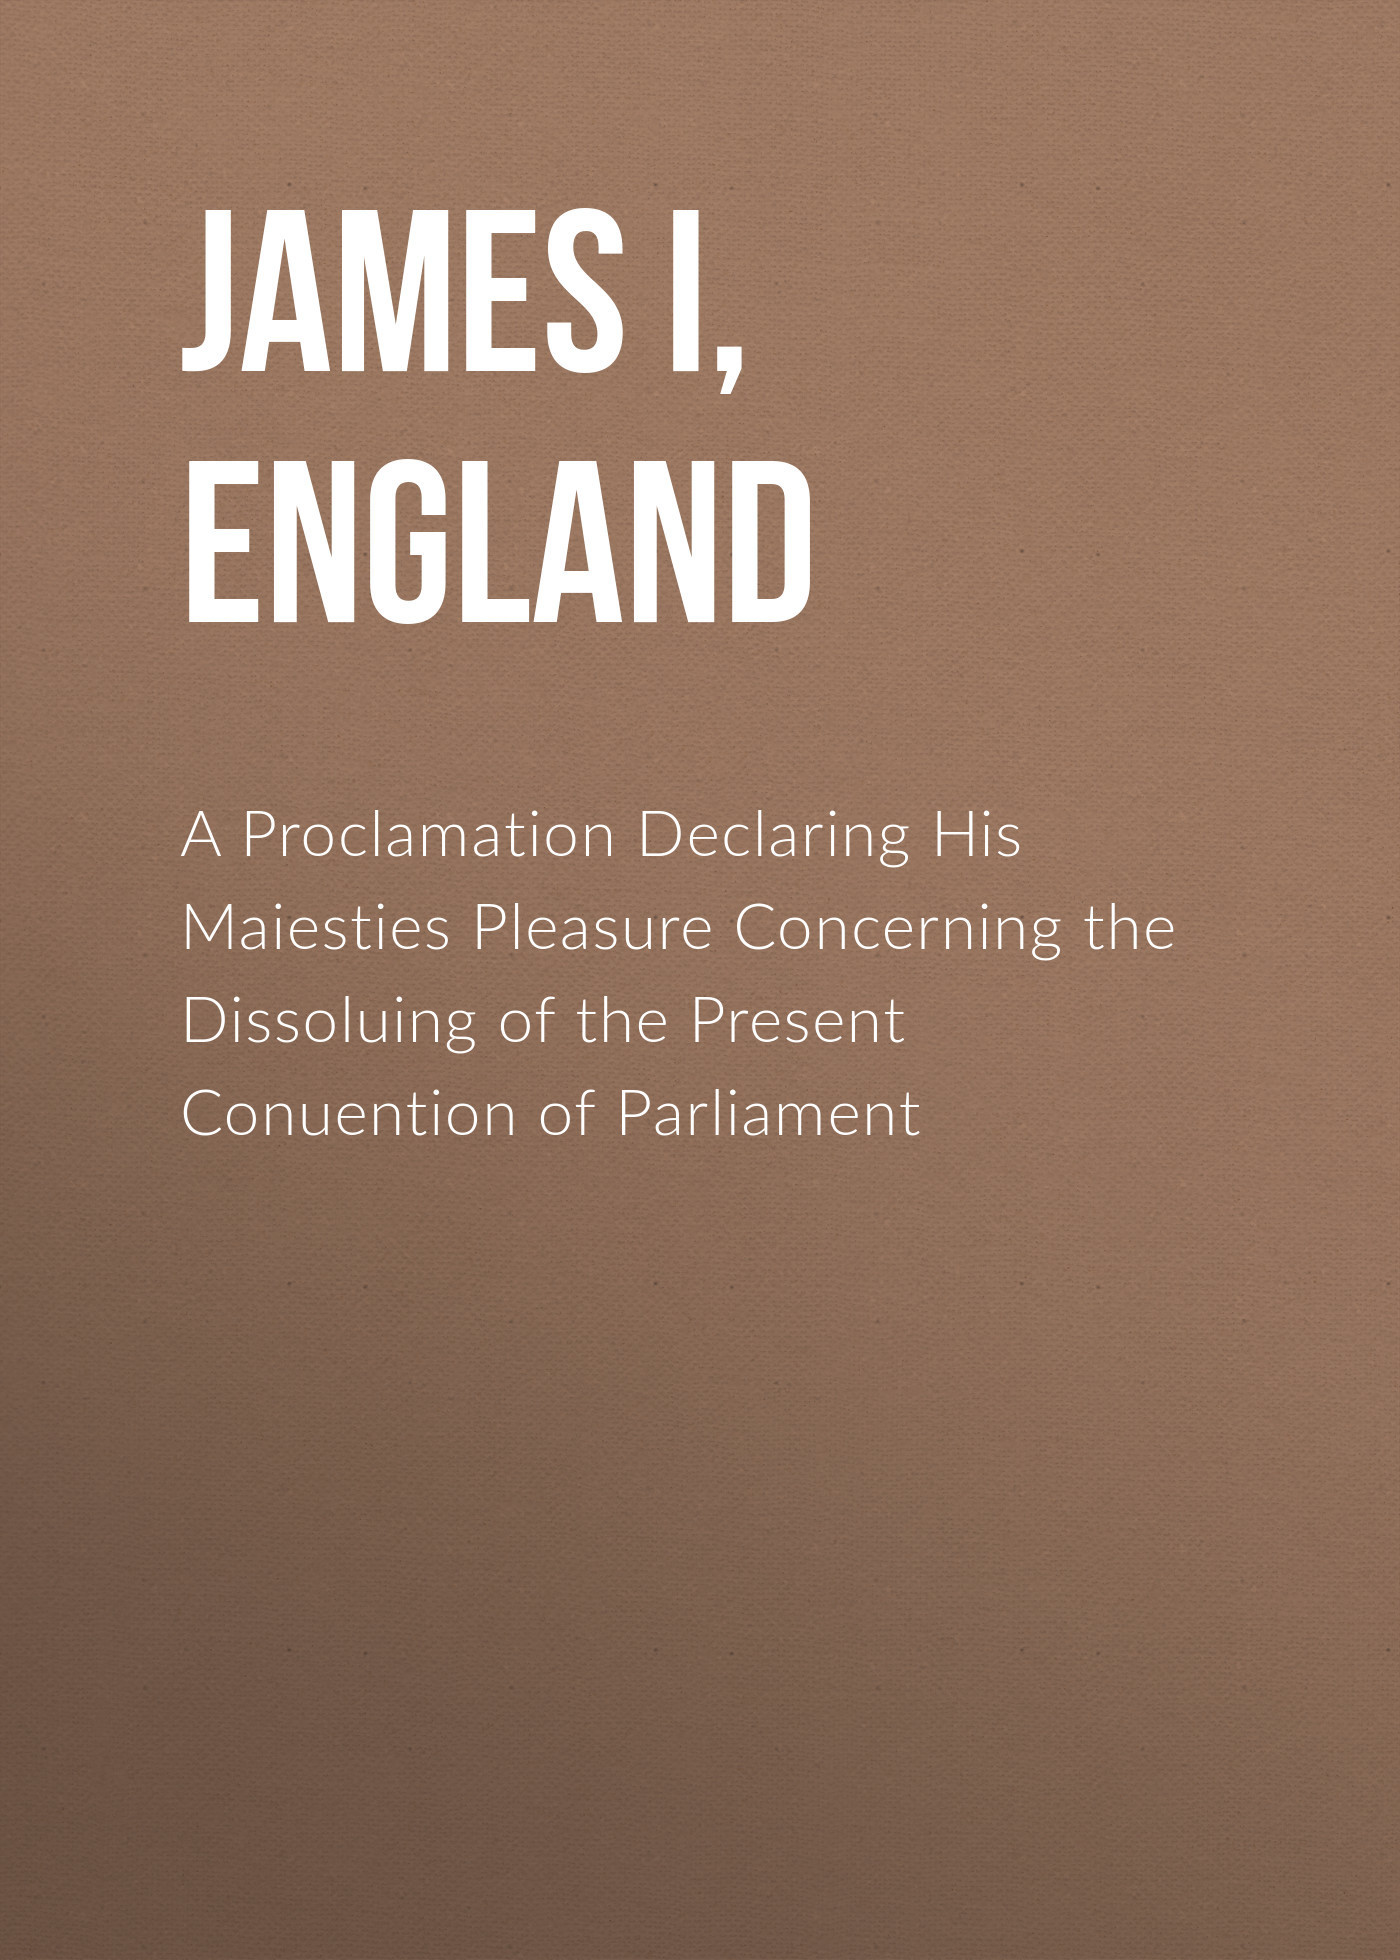 James I, King of England A Proclamation Declaring His Maiesties Pleasure Concerning the Dissoluing of the Present Conuention of Parliament flecker james elroy the king of alsander